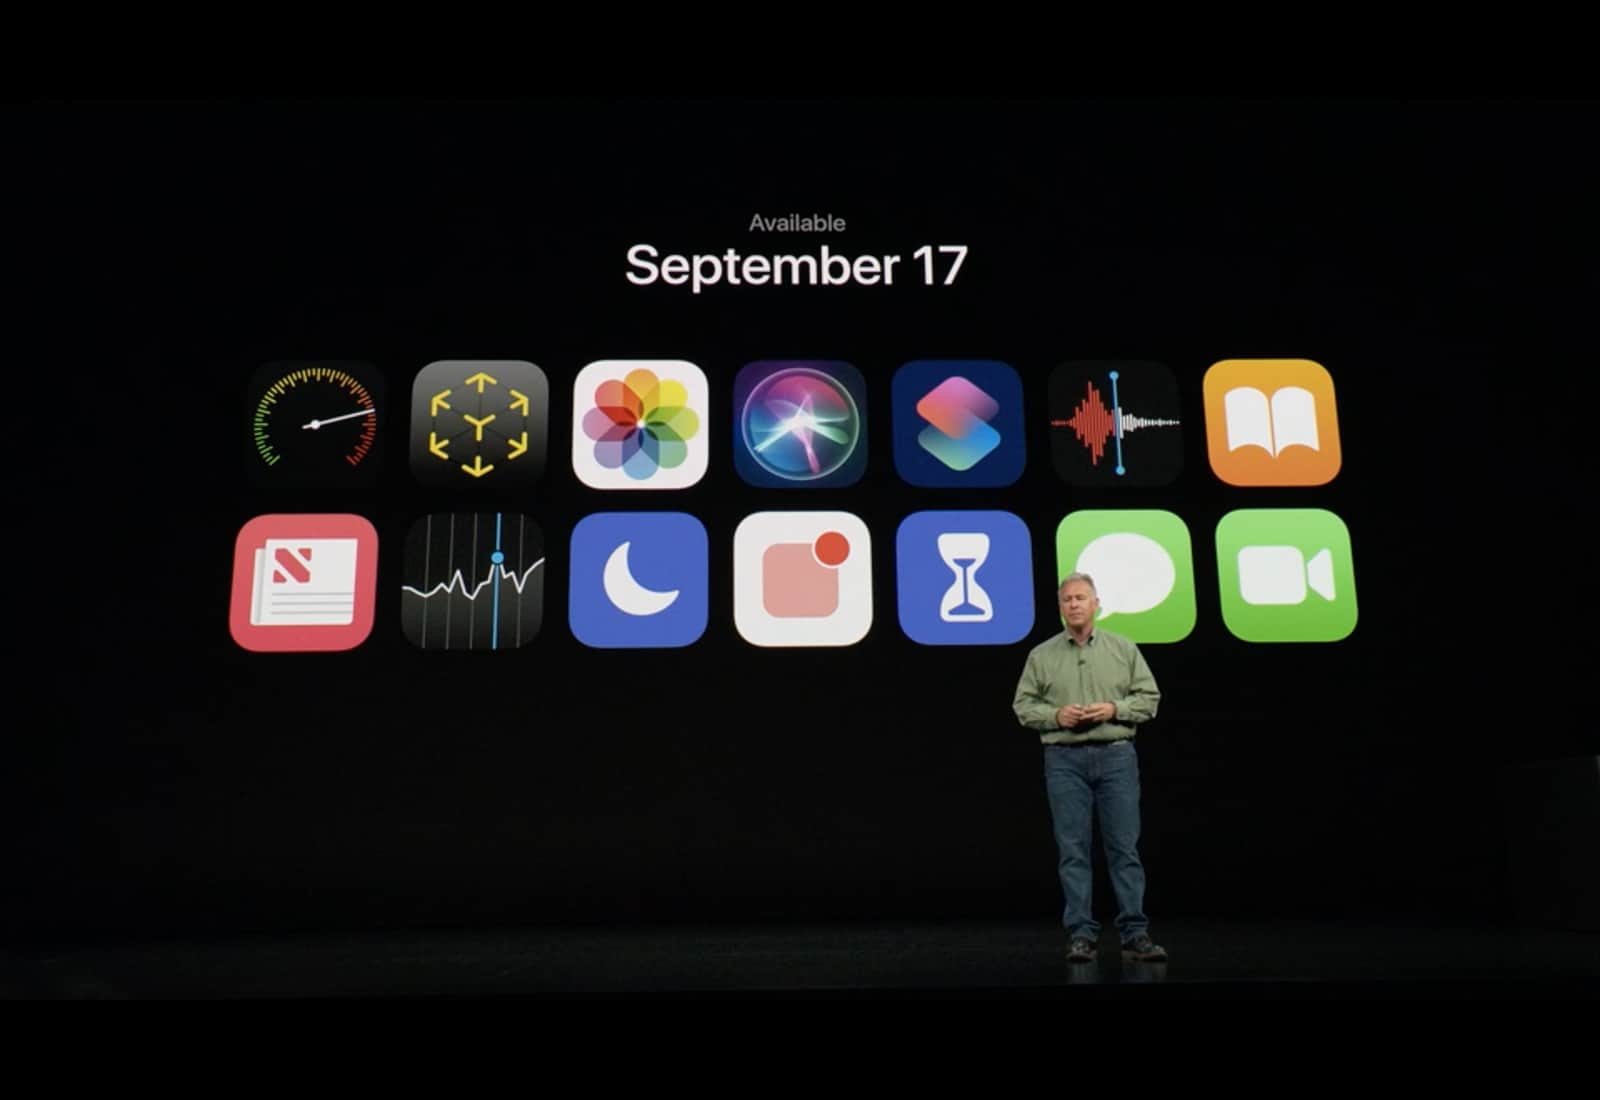 iOS 12 launched on September 17